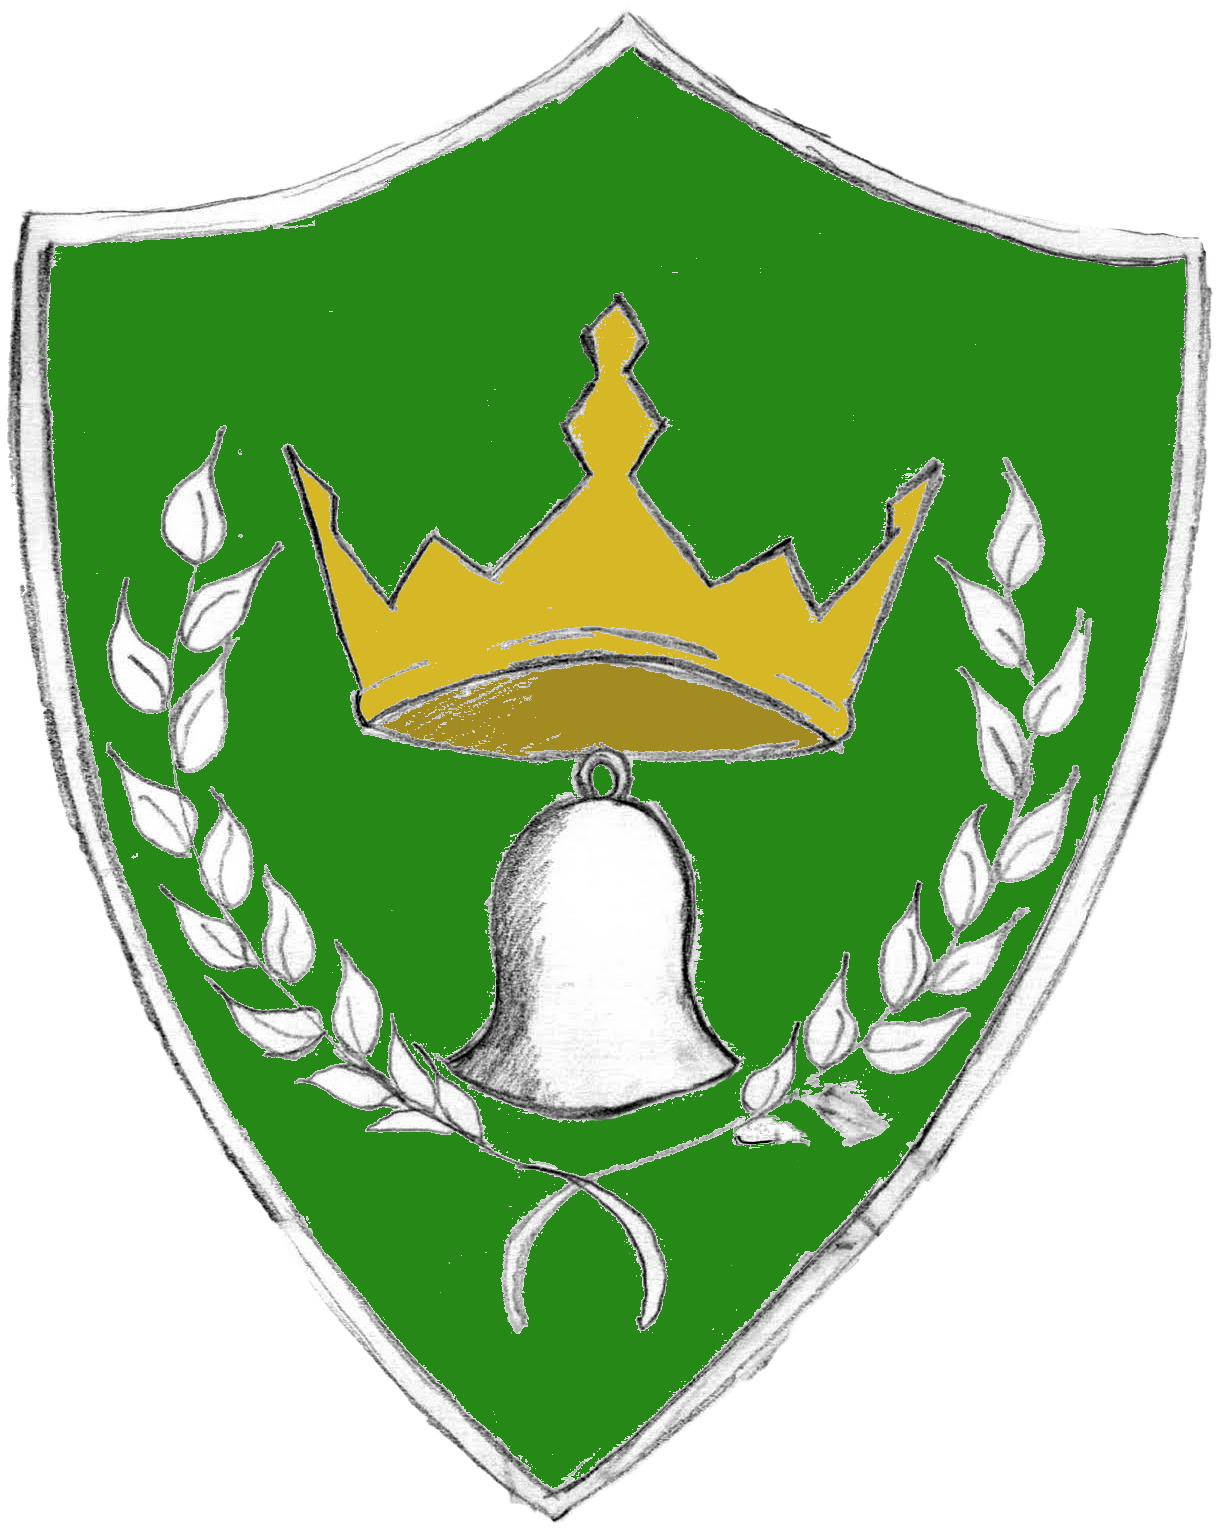 Crest%20-%20Kingdom%20of%20Cyre%2002%20%28personal%20test-edit%2C%20colors%20V1%29.png